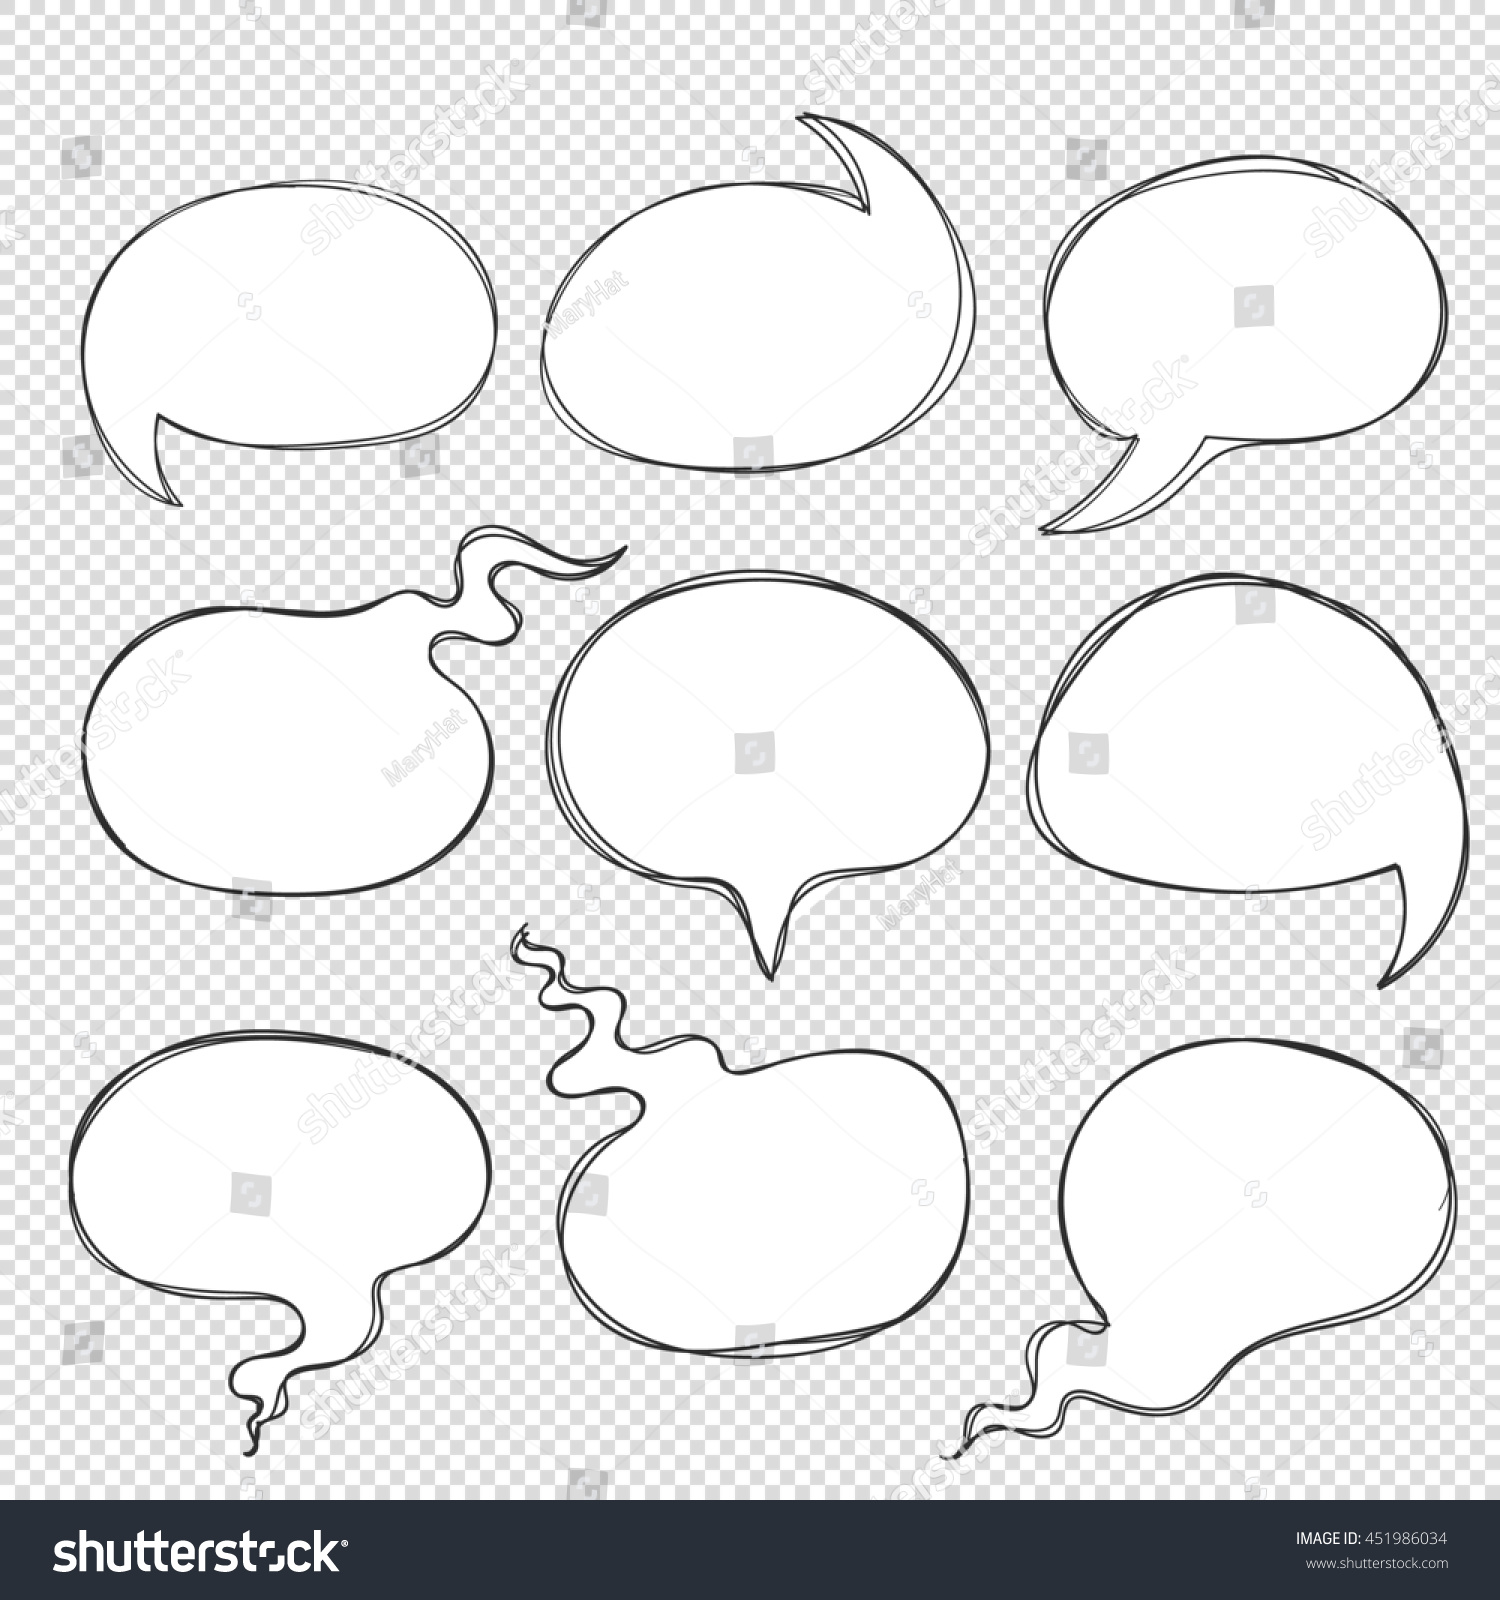 hand drawn doodle frame bubbles lines stock illustration 451986034 hand drawn doodle frame bubbles from lines to think speech dialogue phrases